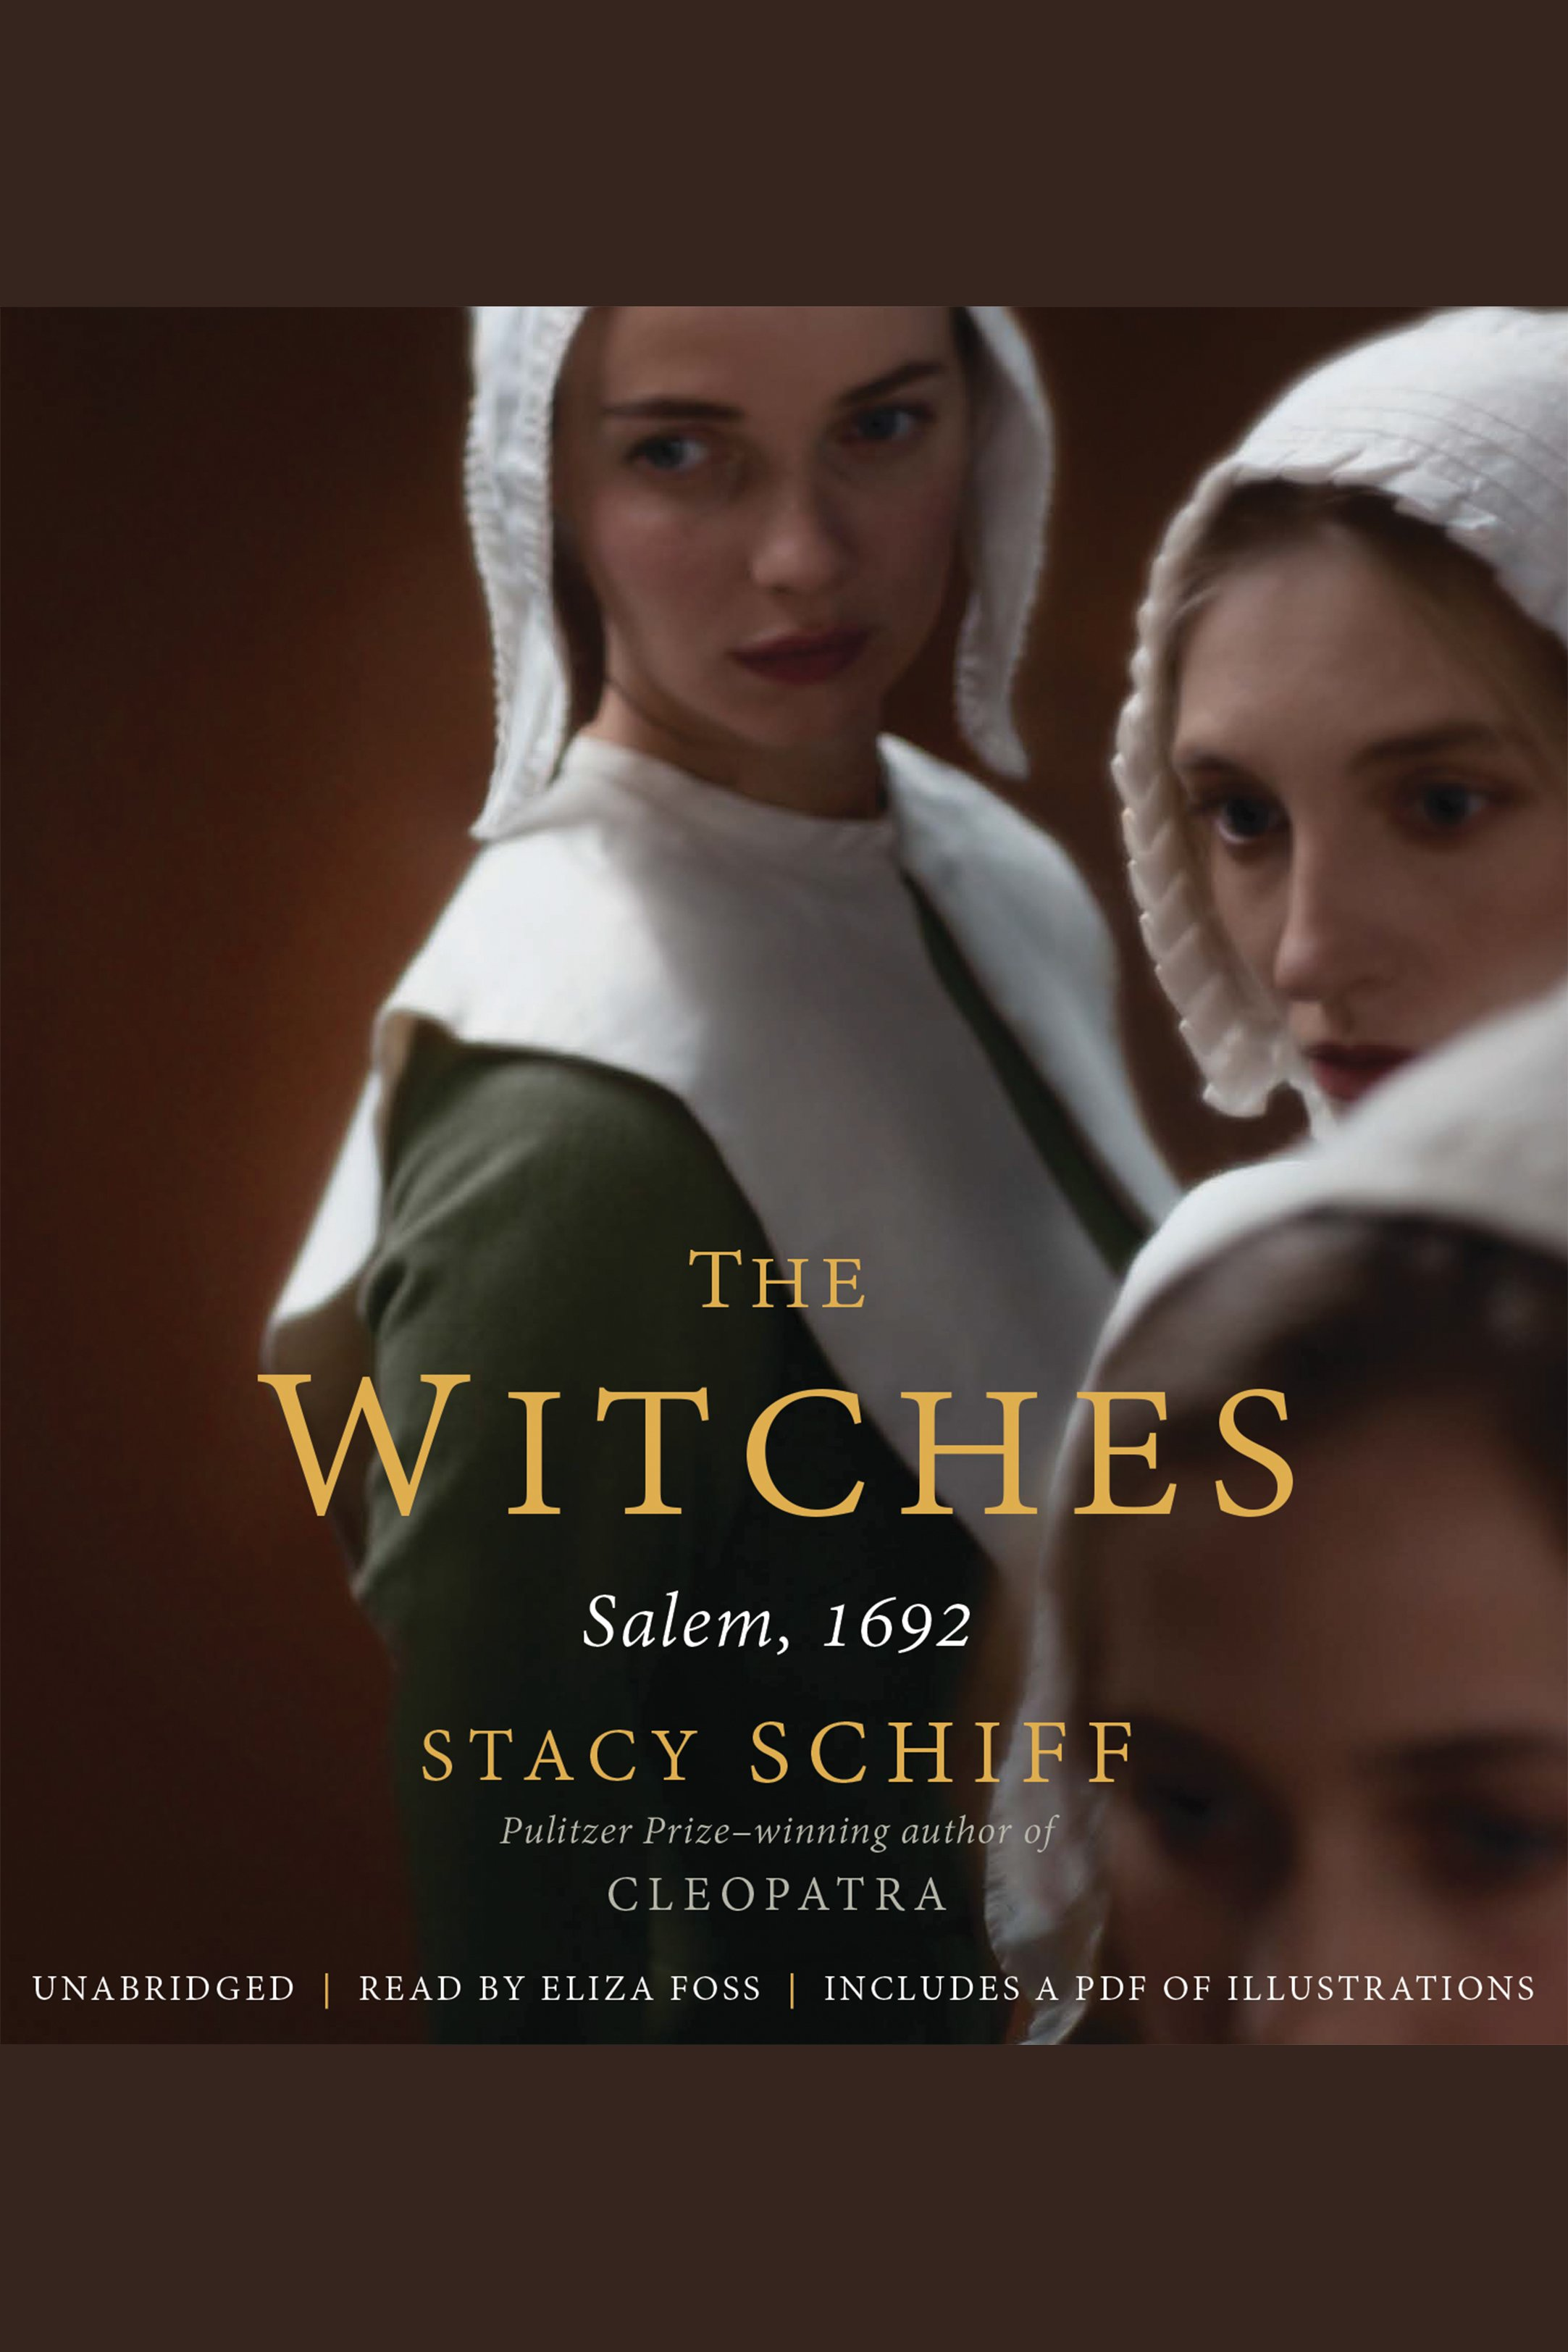 The witches Salem, 1692 cover image